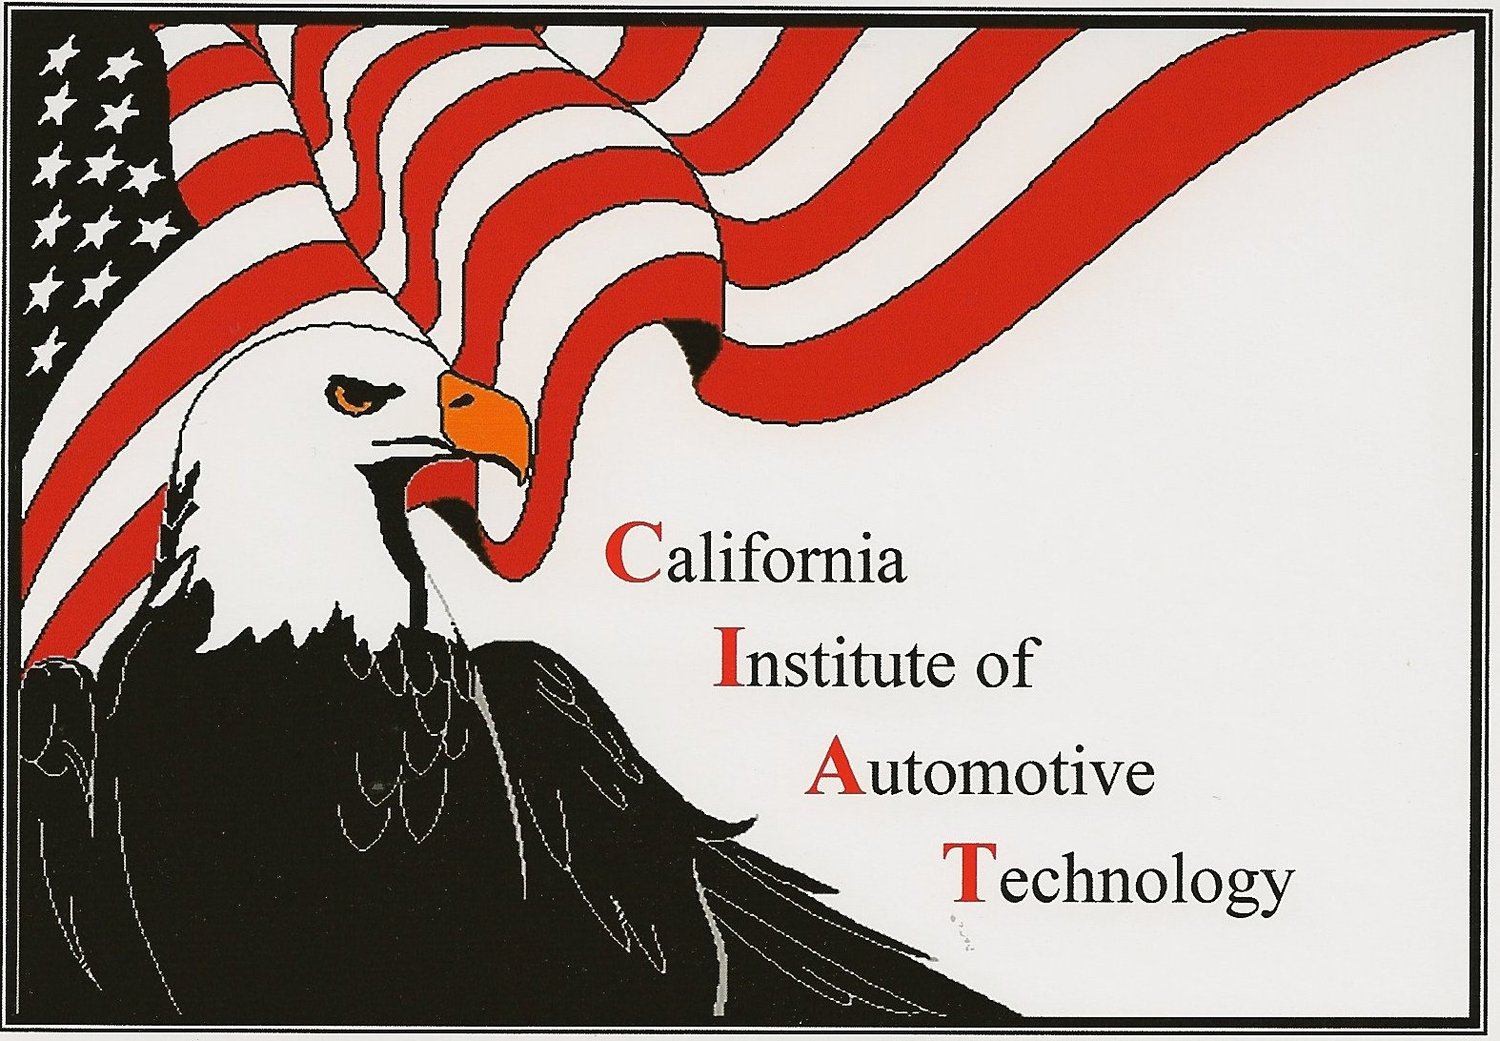 California Institute of Automotive Technology (CIAT)